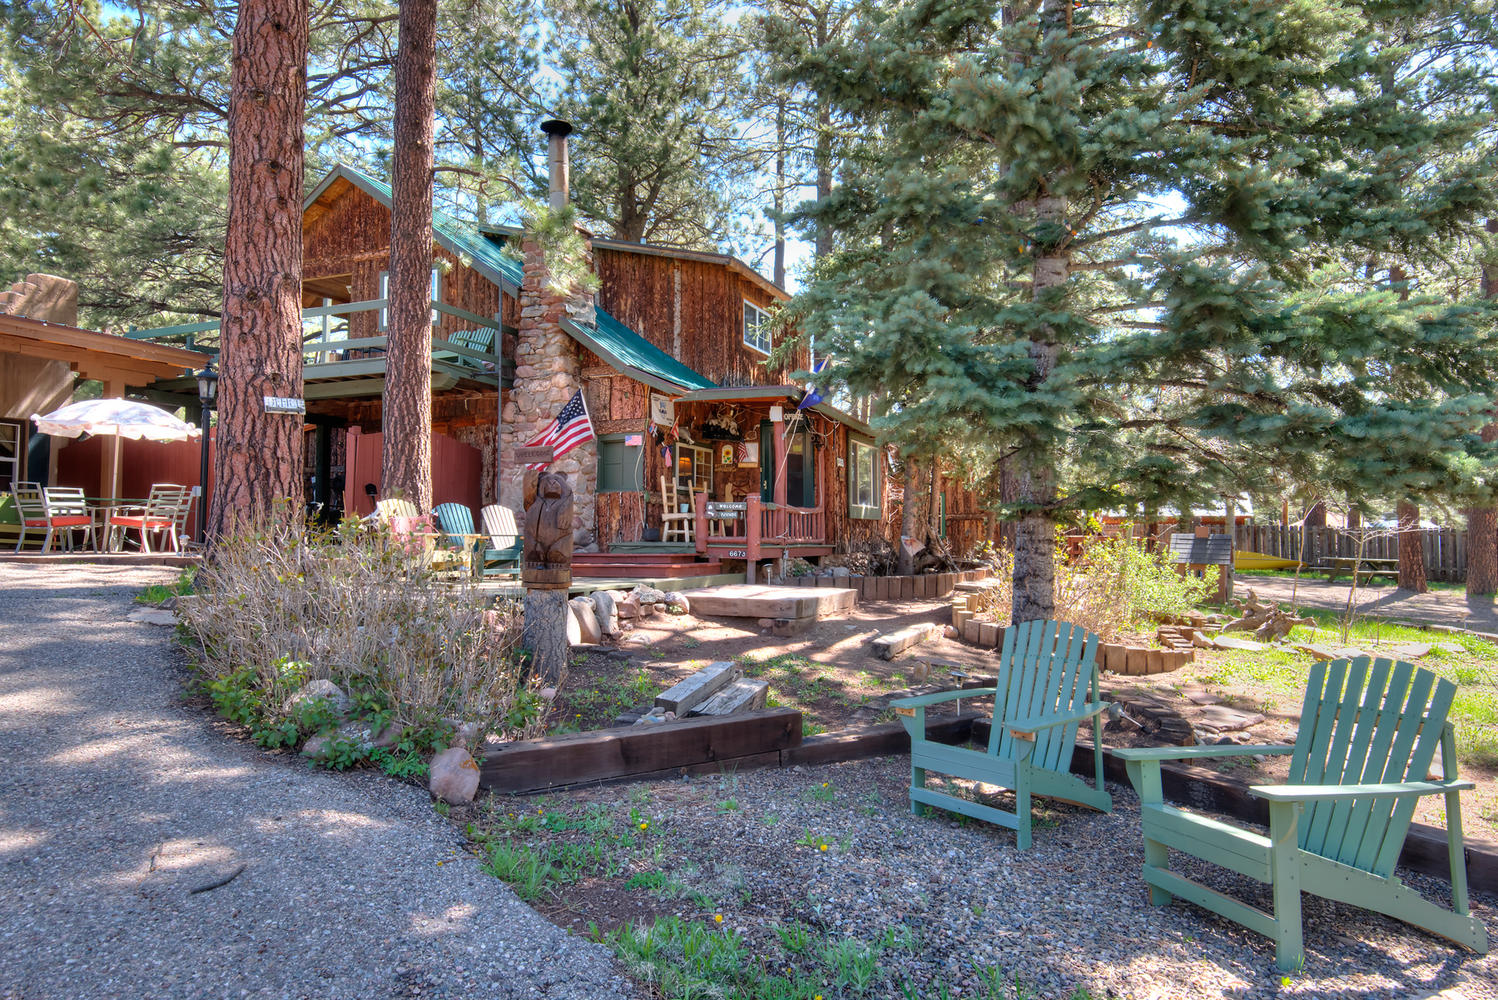 articles photo carkin campground for san city com near colorado rent camping switchbacks mary cabins at lake lodging cristobol lakeside wupperman by